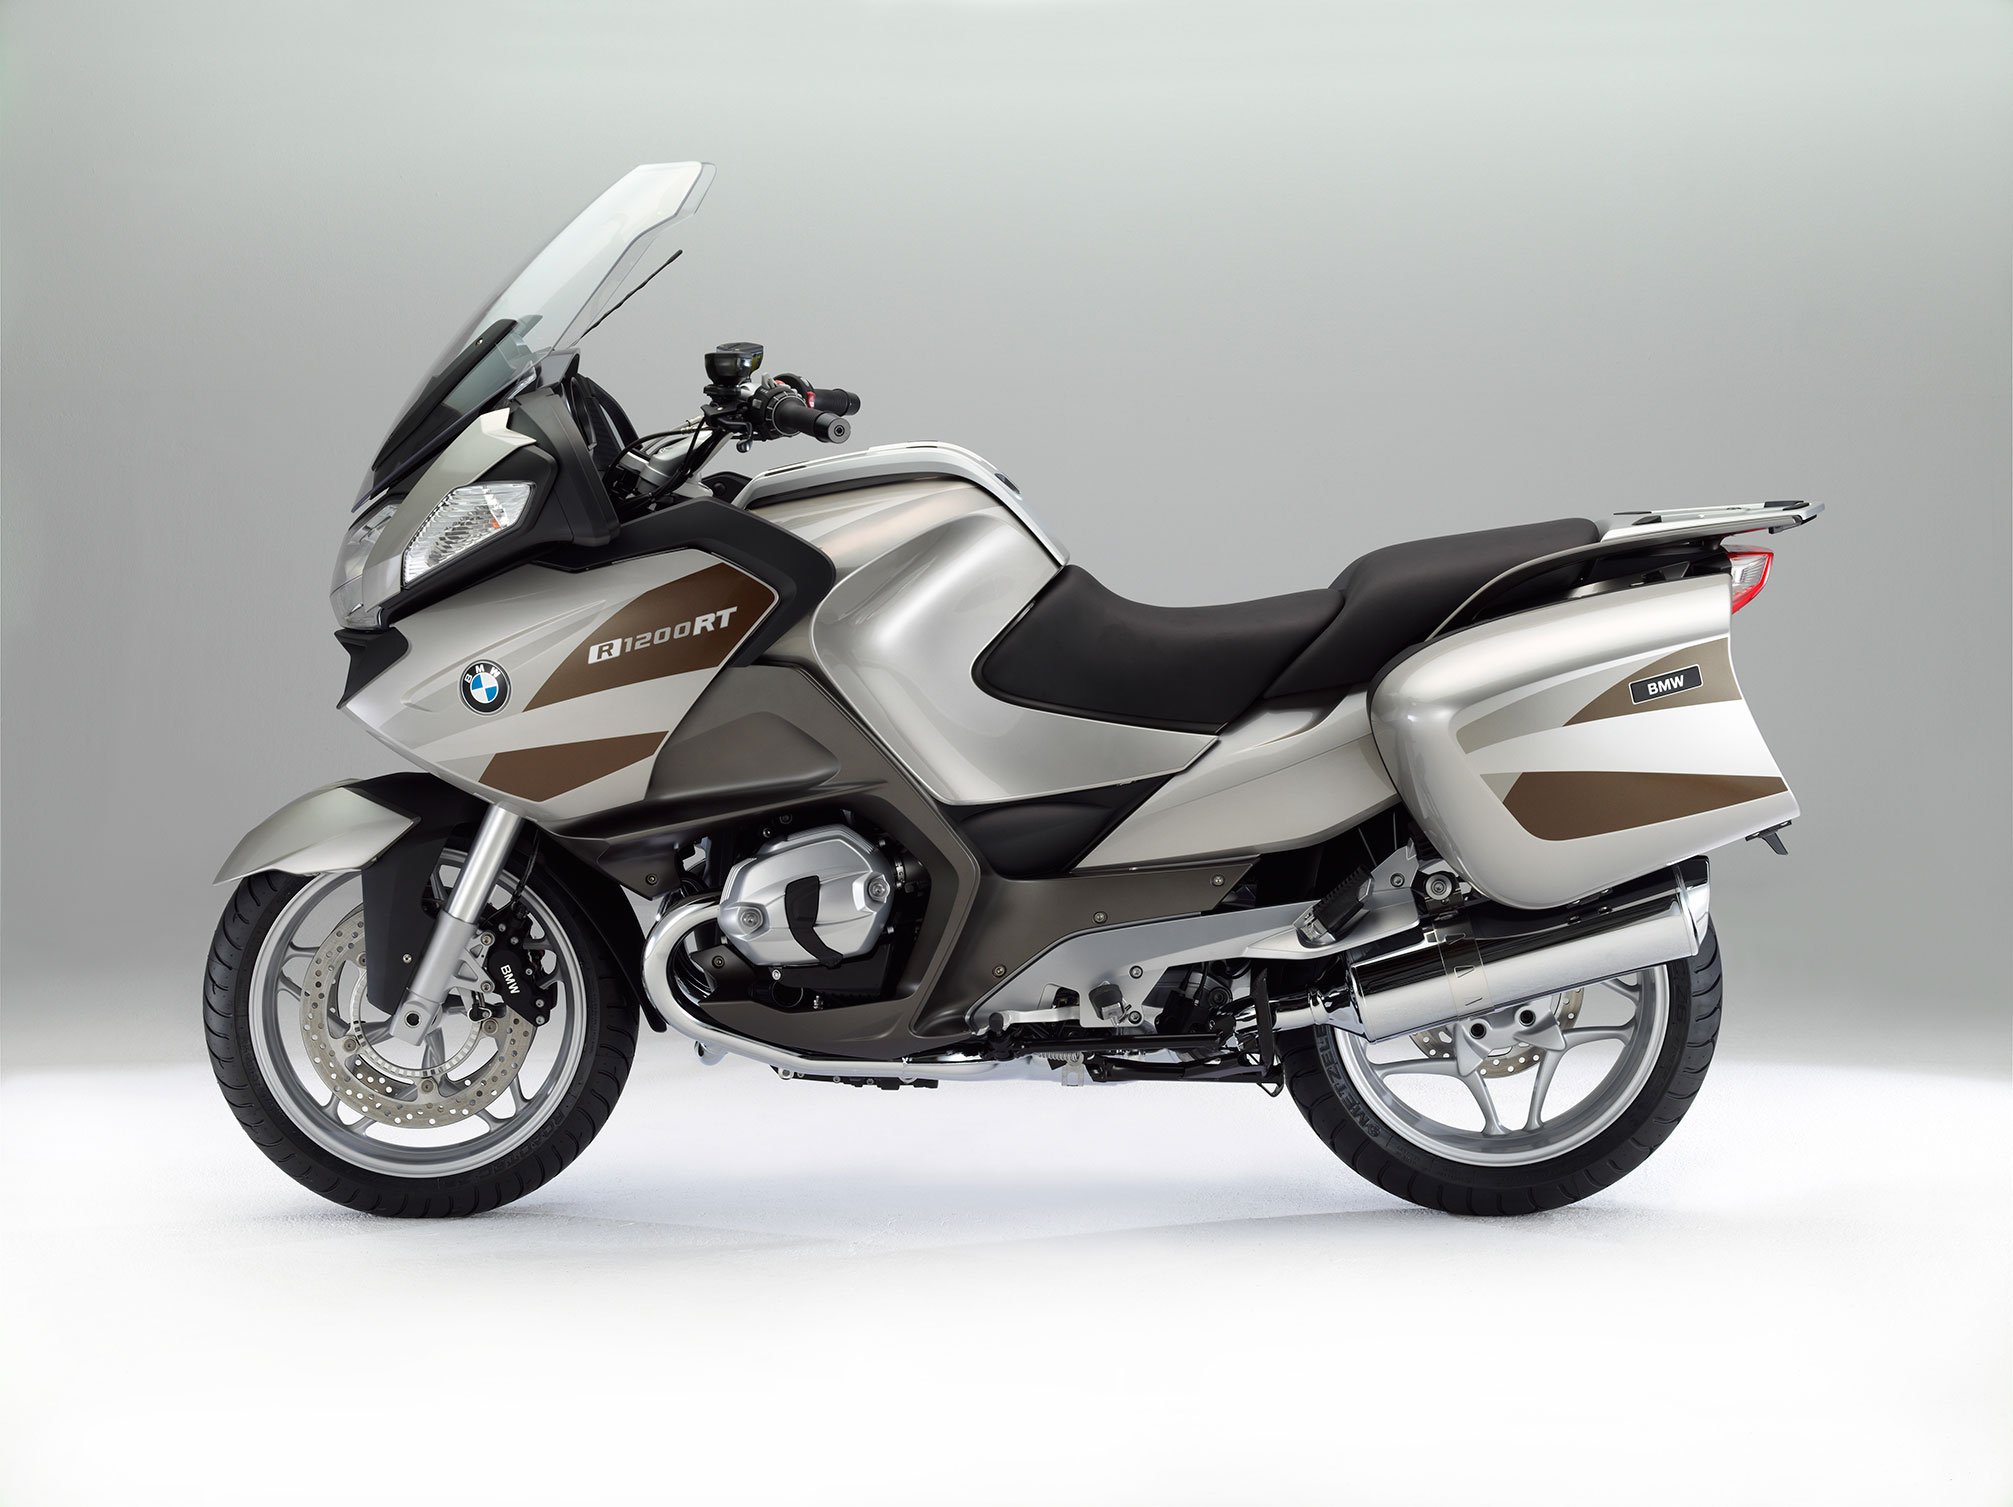 bmw r 1200 rt specs 2012 2013 autoevolution. Black Bedroom Furniture Sets. Home Design Ideas